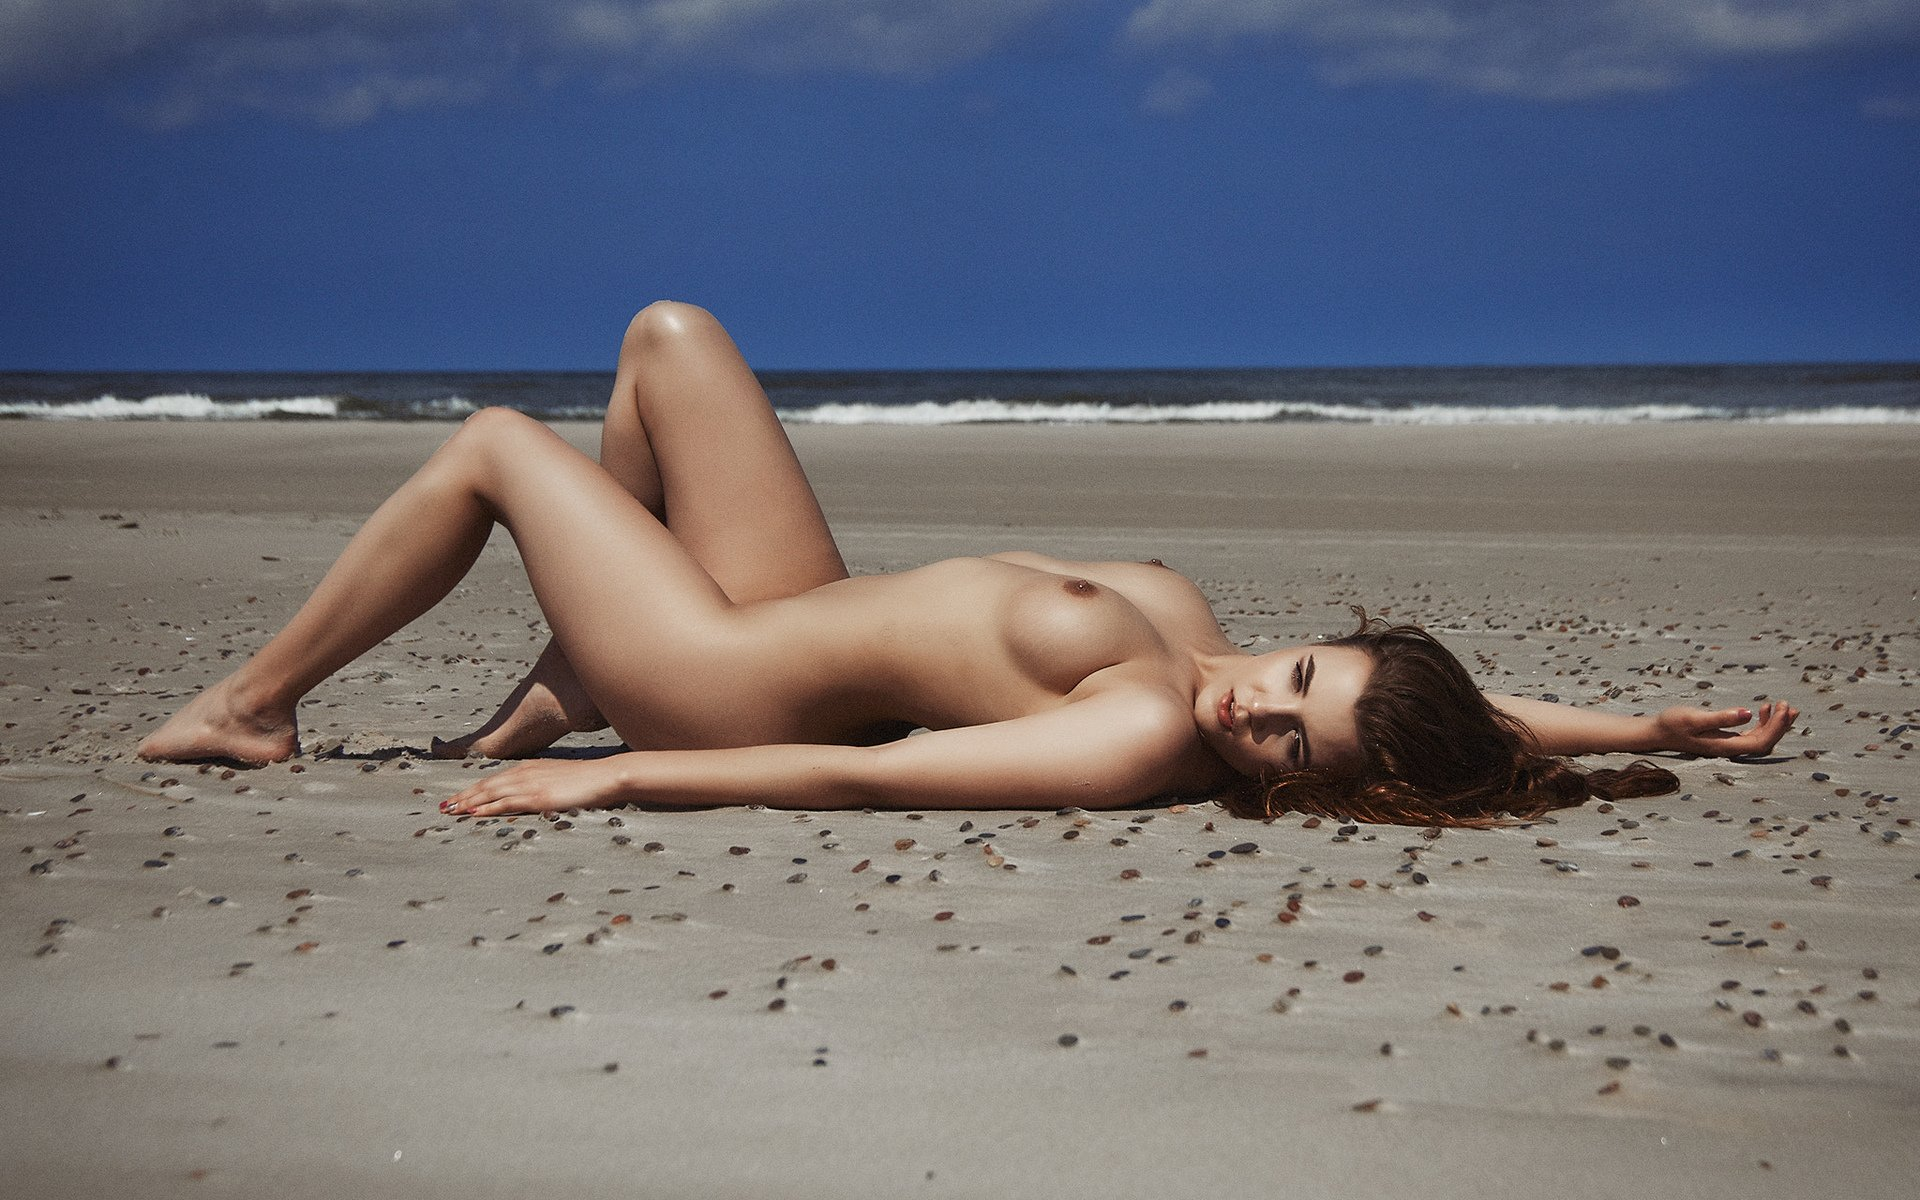 Voluptuous nude babe in the beach